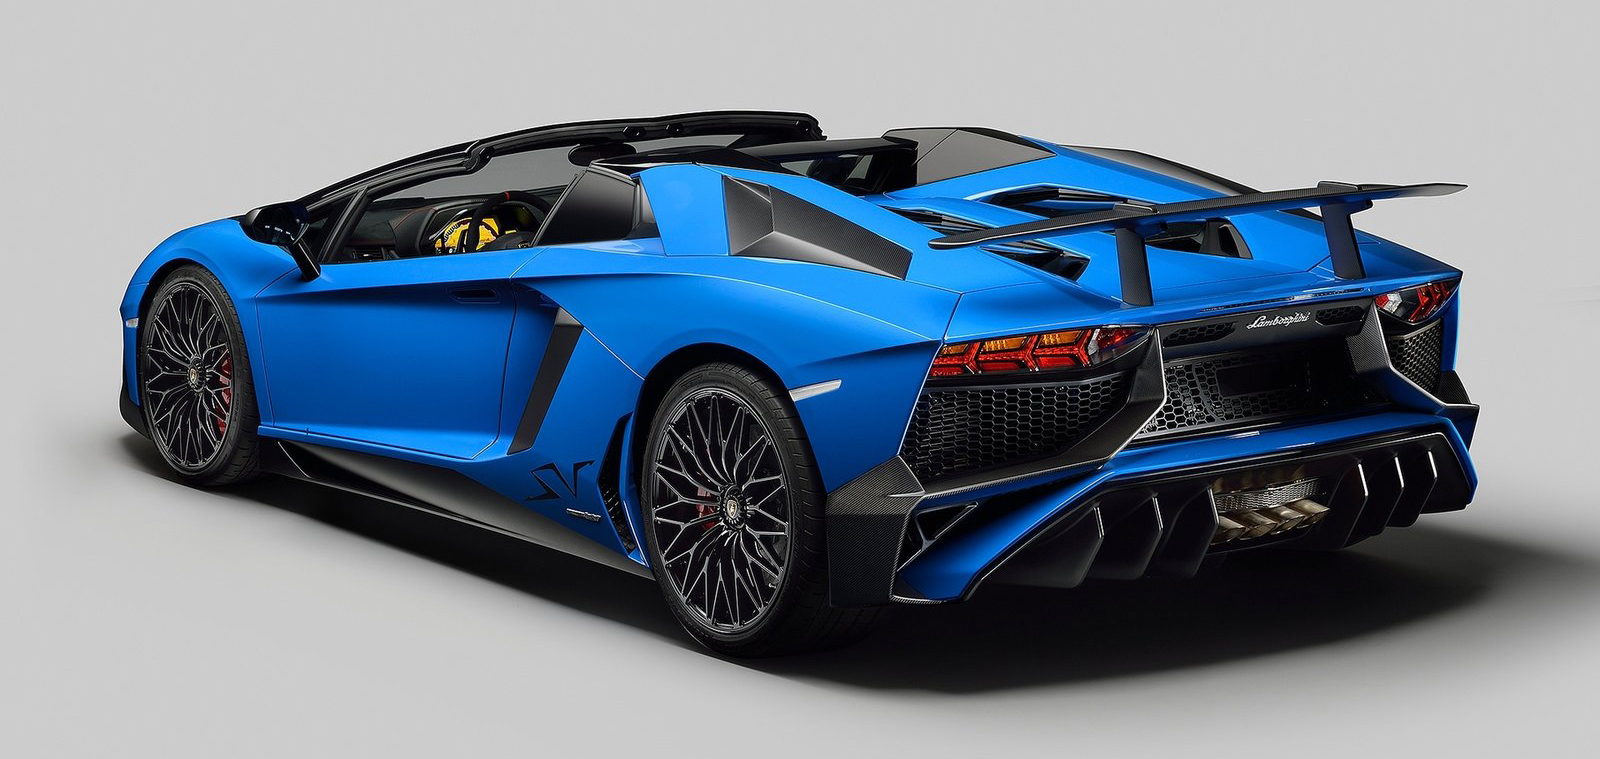 Lamborghini Aventador LP750-4 SV Roadster launched – World Blogs on lotus elise roof, ktm x-bow roof, fiat 500x roof, bugatti veyron roof, porsche boxster roof, nissan leaf roof, jaguar xj roof, maybach roof, bmw m3 roof, caterham 7 roof, jeep wrangler roof, volkswagen golf roof, dodge ram roof, honda accord roof, ferrari 458 spider roof, ford mustang roof, porsche 918 roof, ariel atom roof, jeep grand cherokee roof, porsche panamera roof,